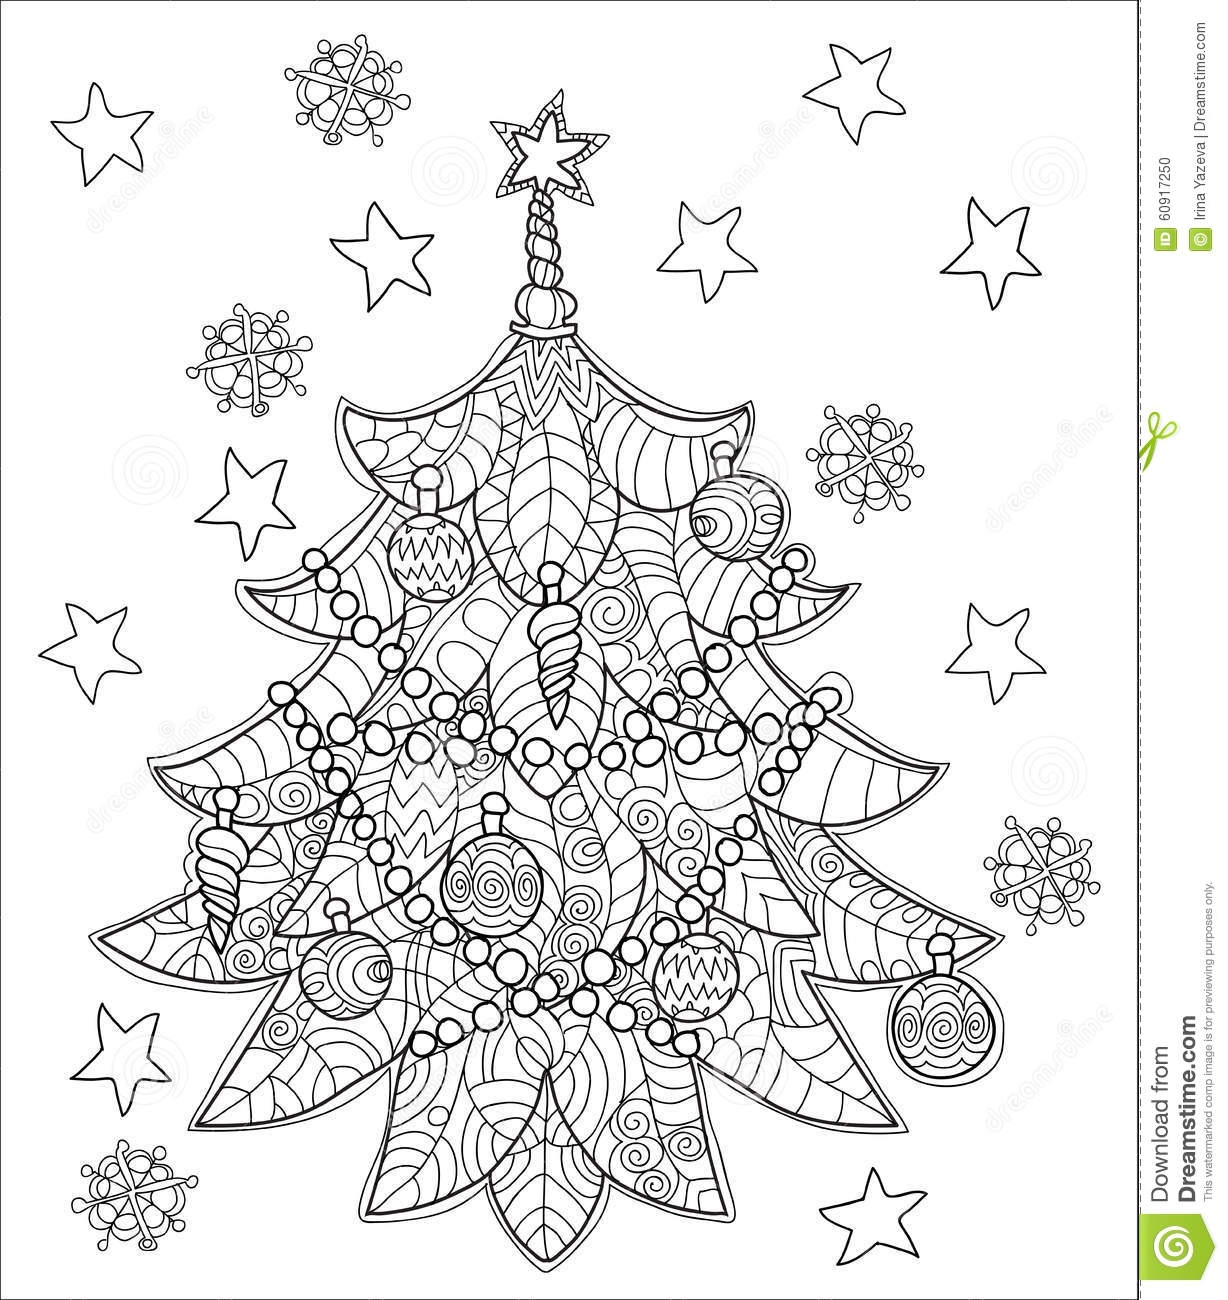 zen coloring pages - stock illustration merry christmas zentangle fir tree doodle hand drawn vector background decorations ball star image